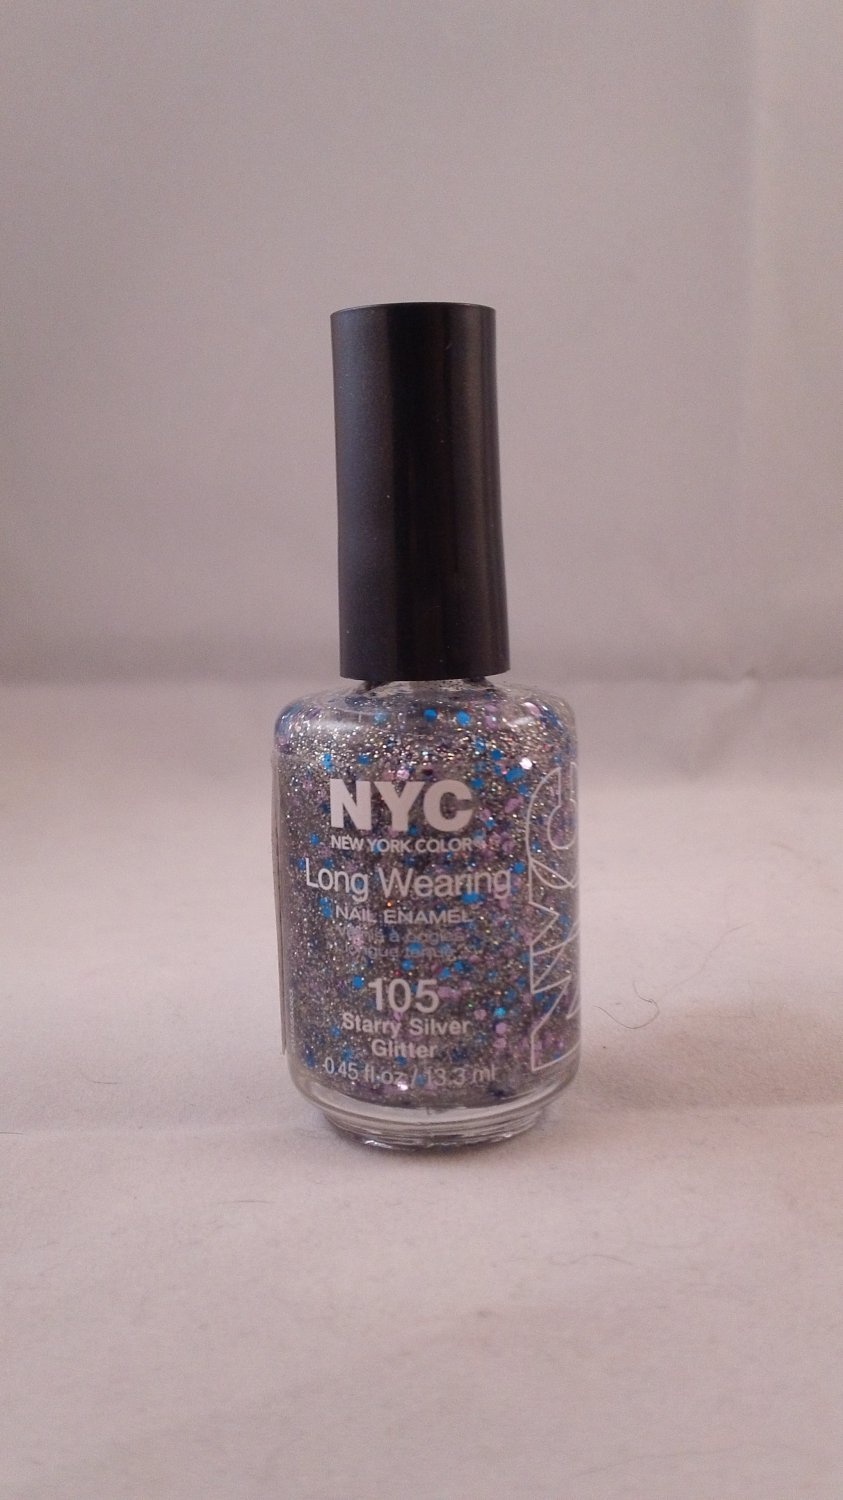 NYC New York Color Long Wearing Nail Enamel Lacquer Polish #105 Starry Silver Glitter